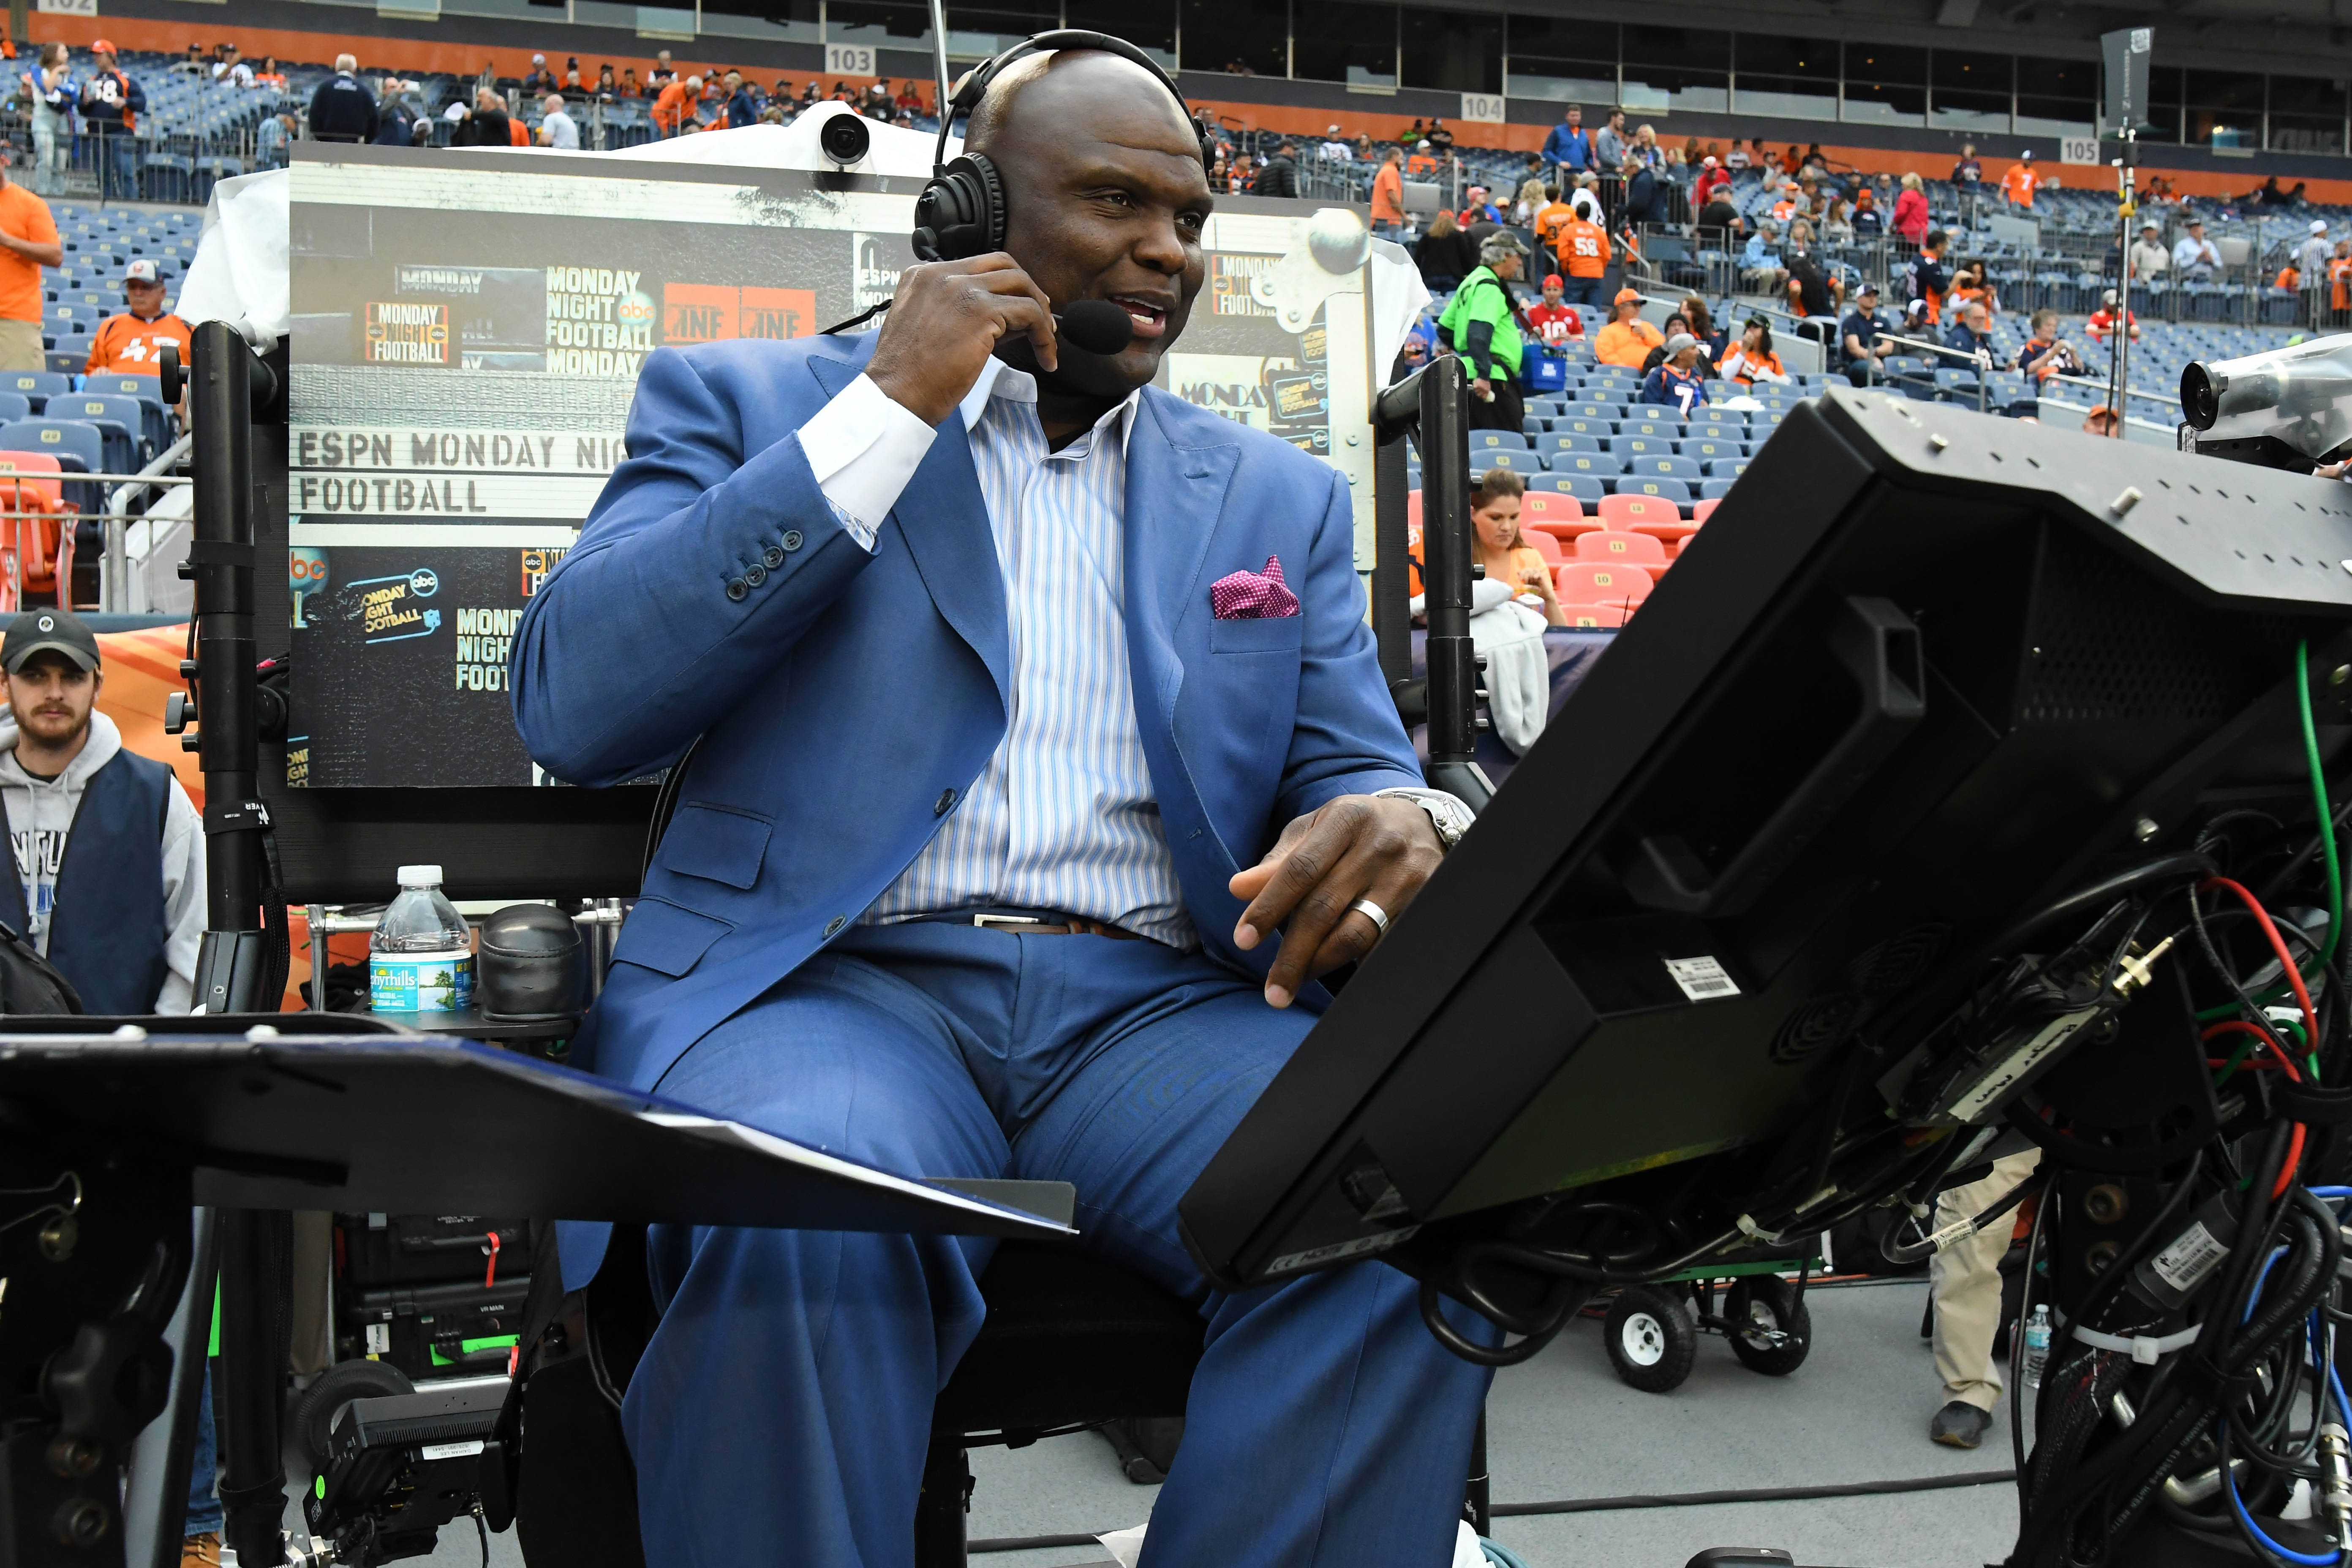 ESPN says goodbye to the Booger McFarland's BoogerMobile on 'Monday Night Football'